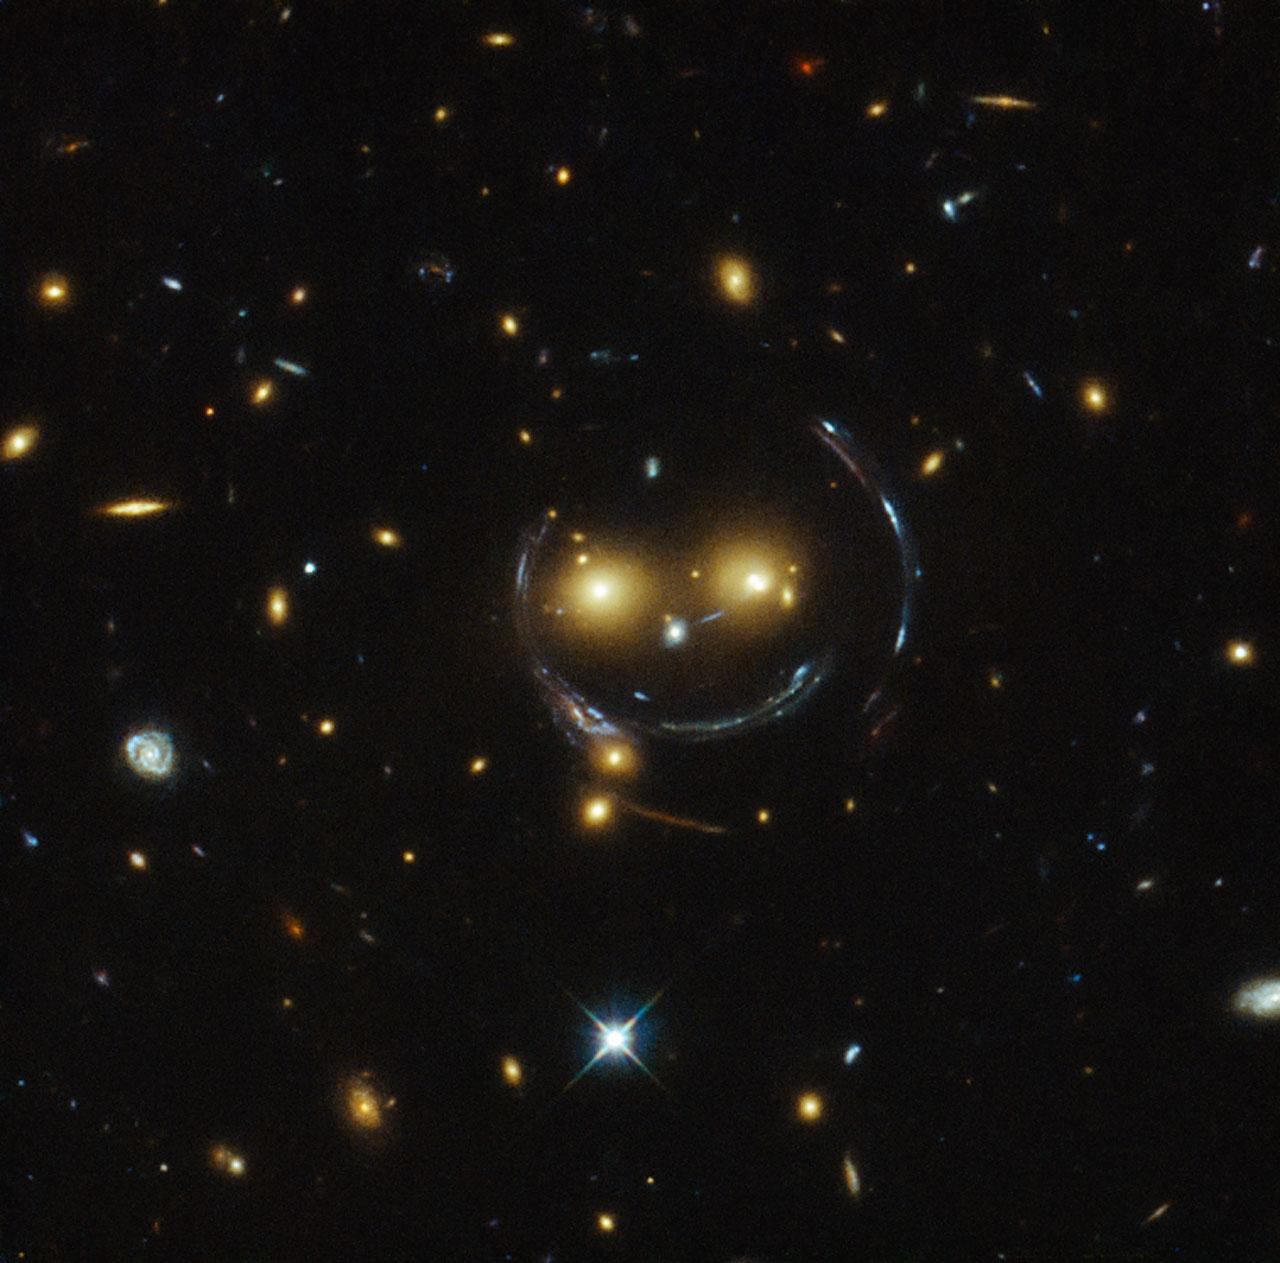 #SolarSunday In this image, taken by Hubble, is the galaxy cluster SDSS J1038+4849 — and it seems to be smiling http://t.co/Hcf9xNiJMn